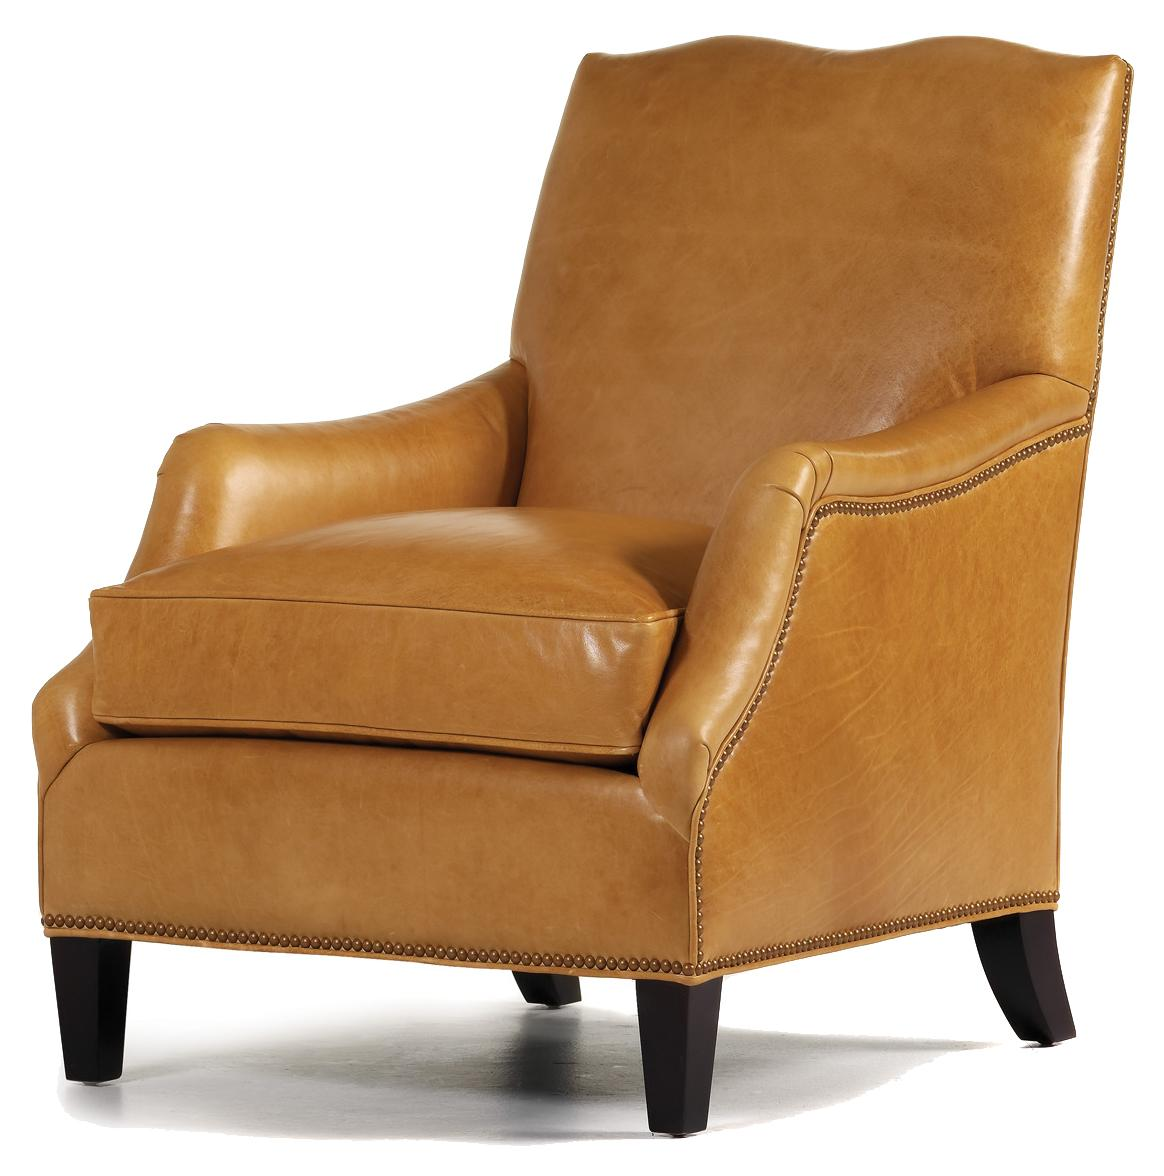 Fine Upholstered Accents Nancy Chair    by Jessica Charles at Alison Craig Home Furnishings